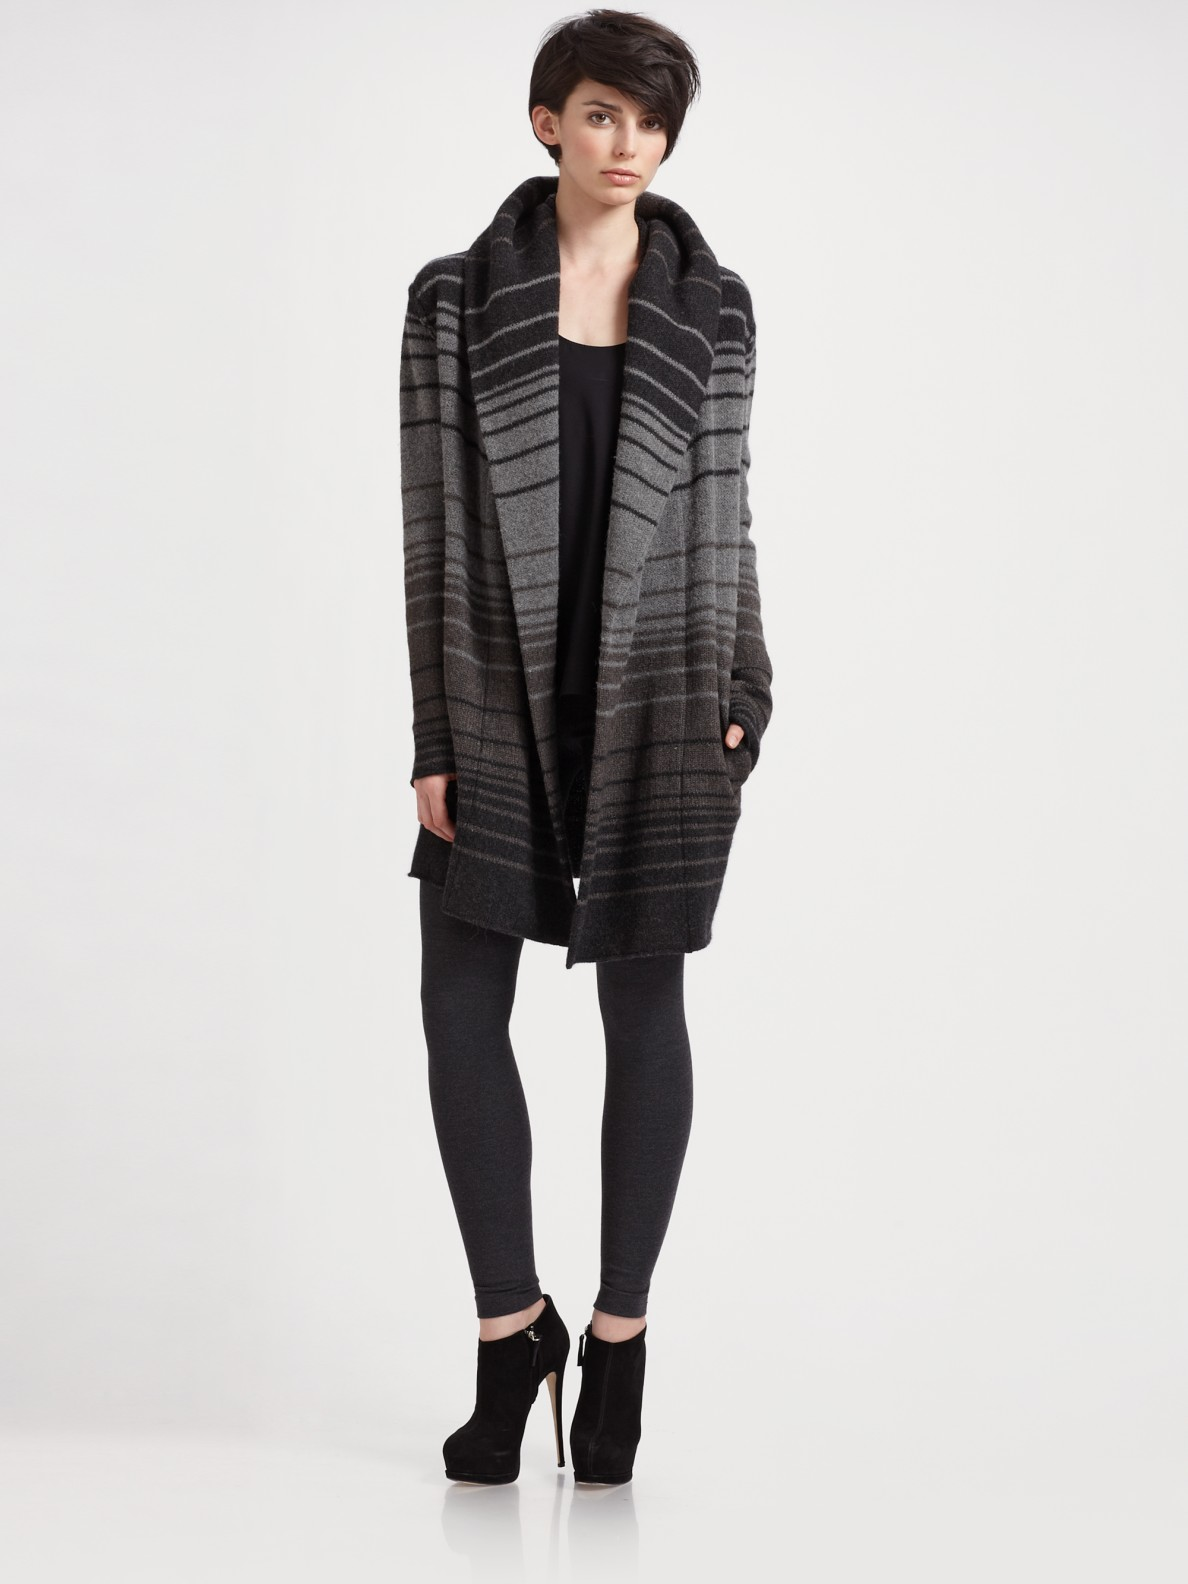 Vince Sophie Striped Sweater Coat in Black | Lyst